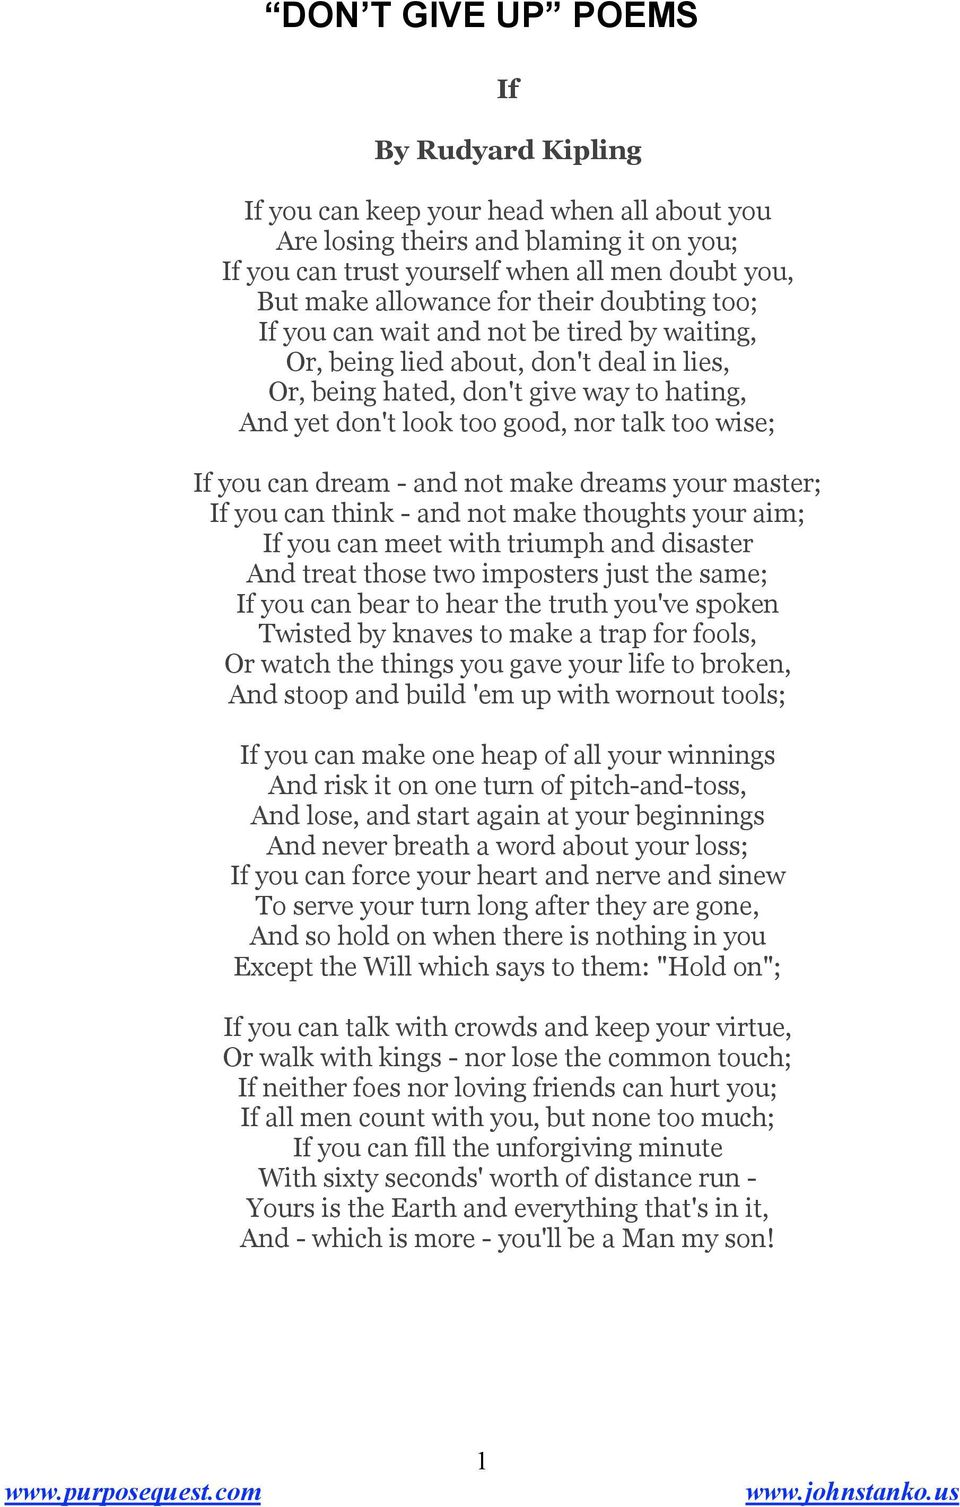 Poem about not giving up on your dreams